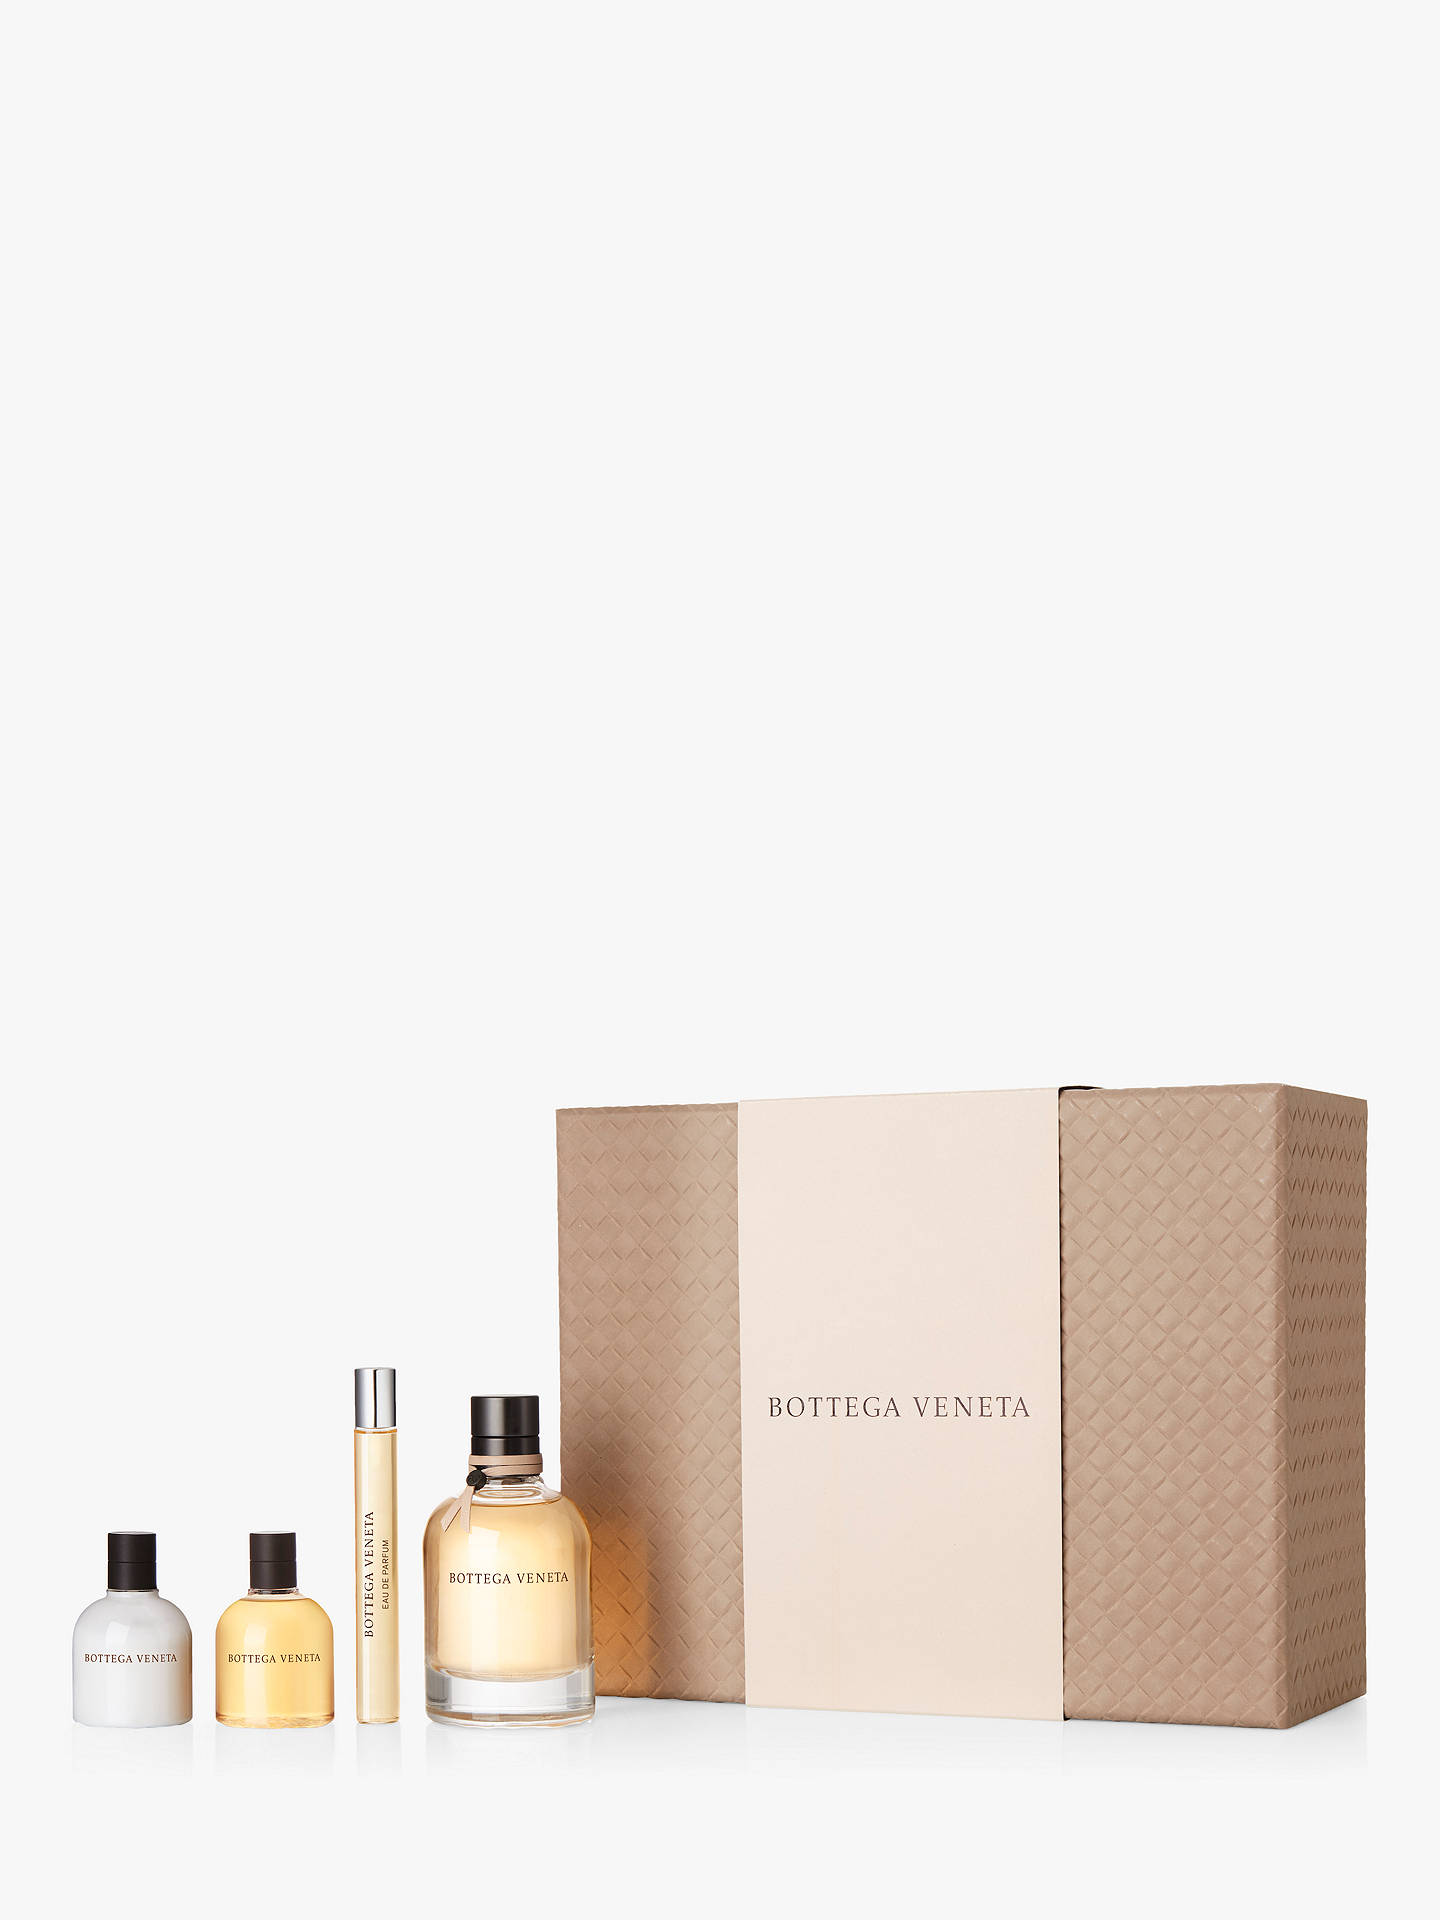 Buy Bottega Veneta Signature 75ml Eau de Parfum Fragrance Gift Set Online at johnlewis.com